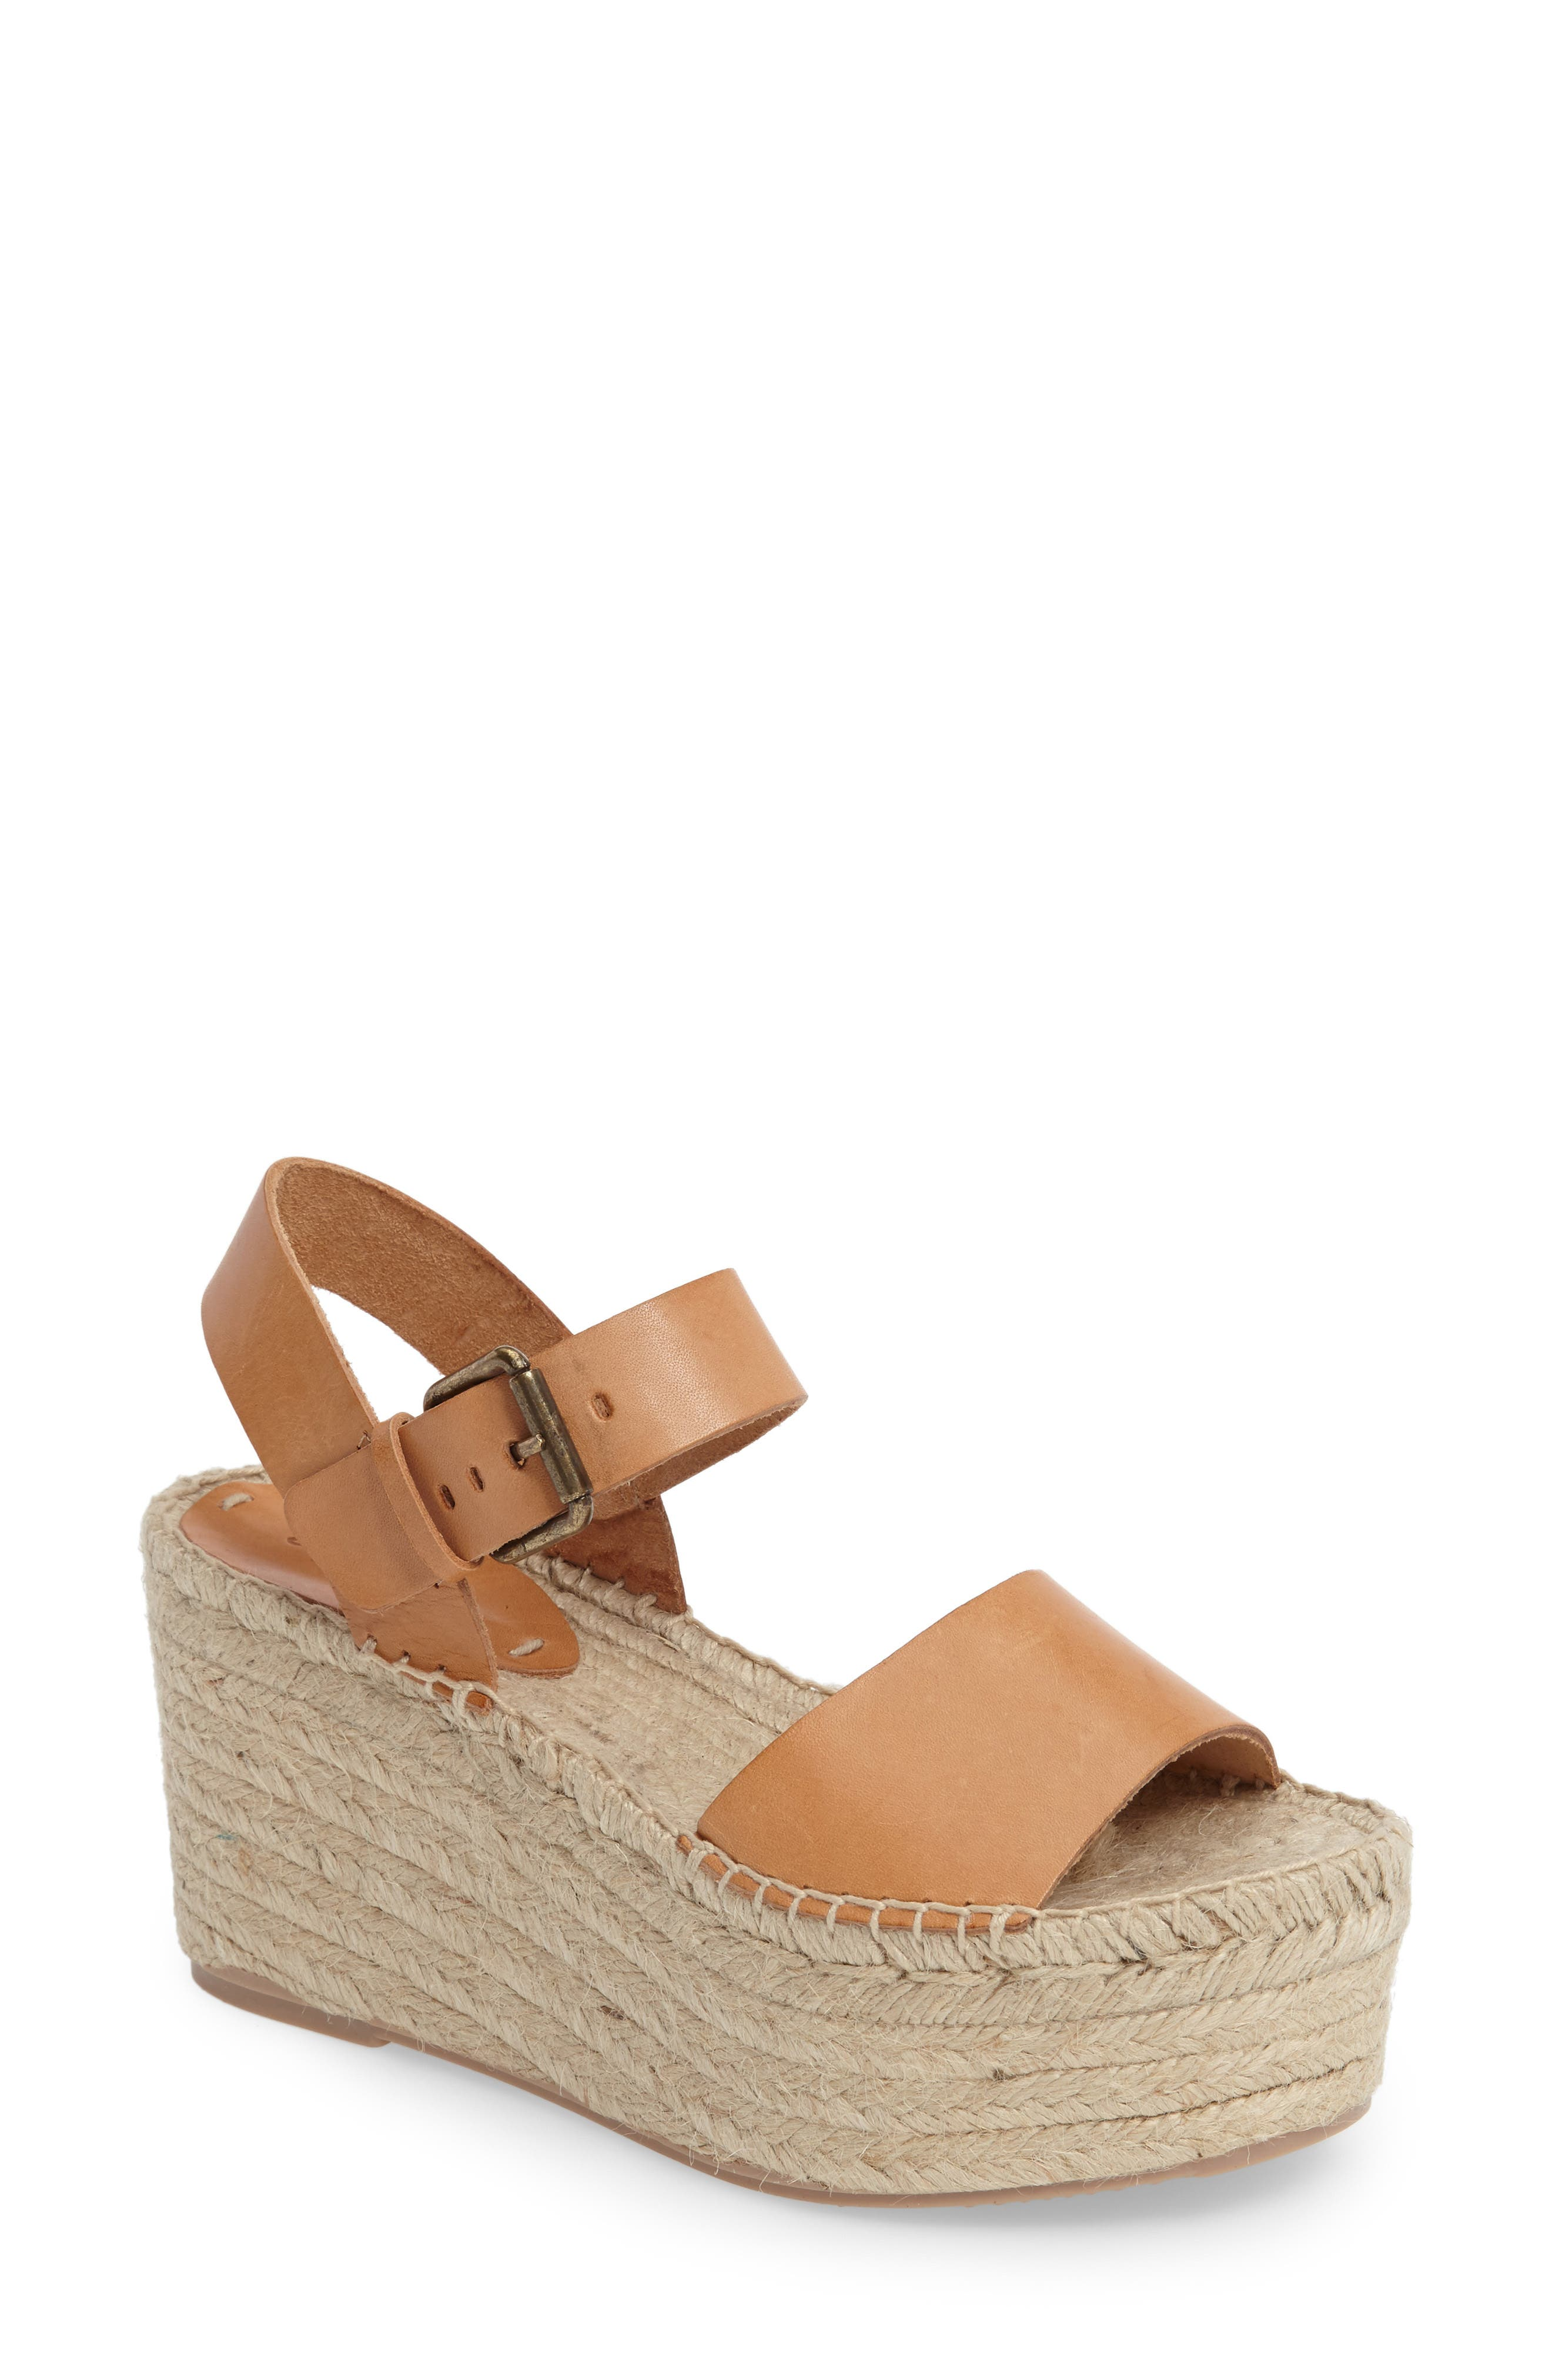 Alternate Image 1 Selected - Soludos Platform Wedge Sandal (Women)